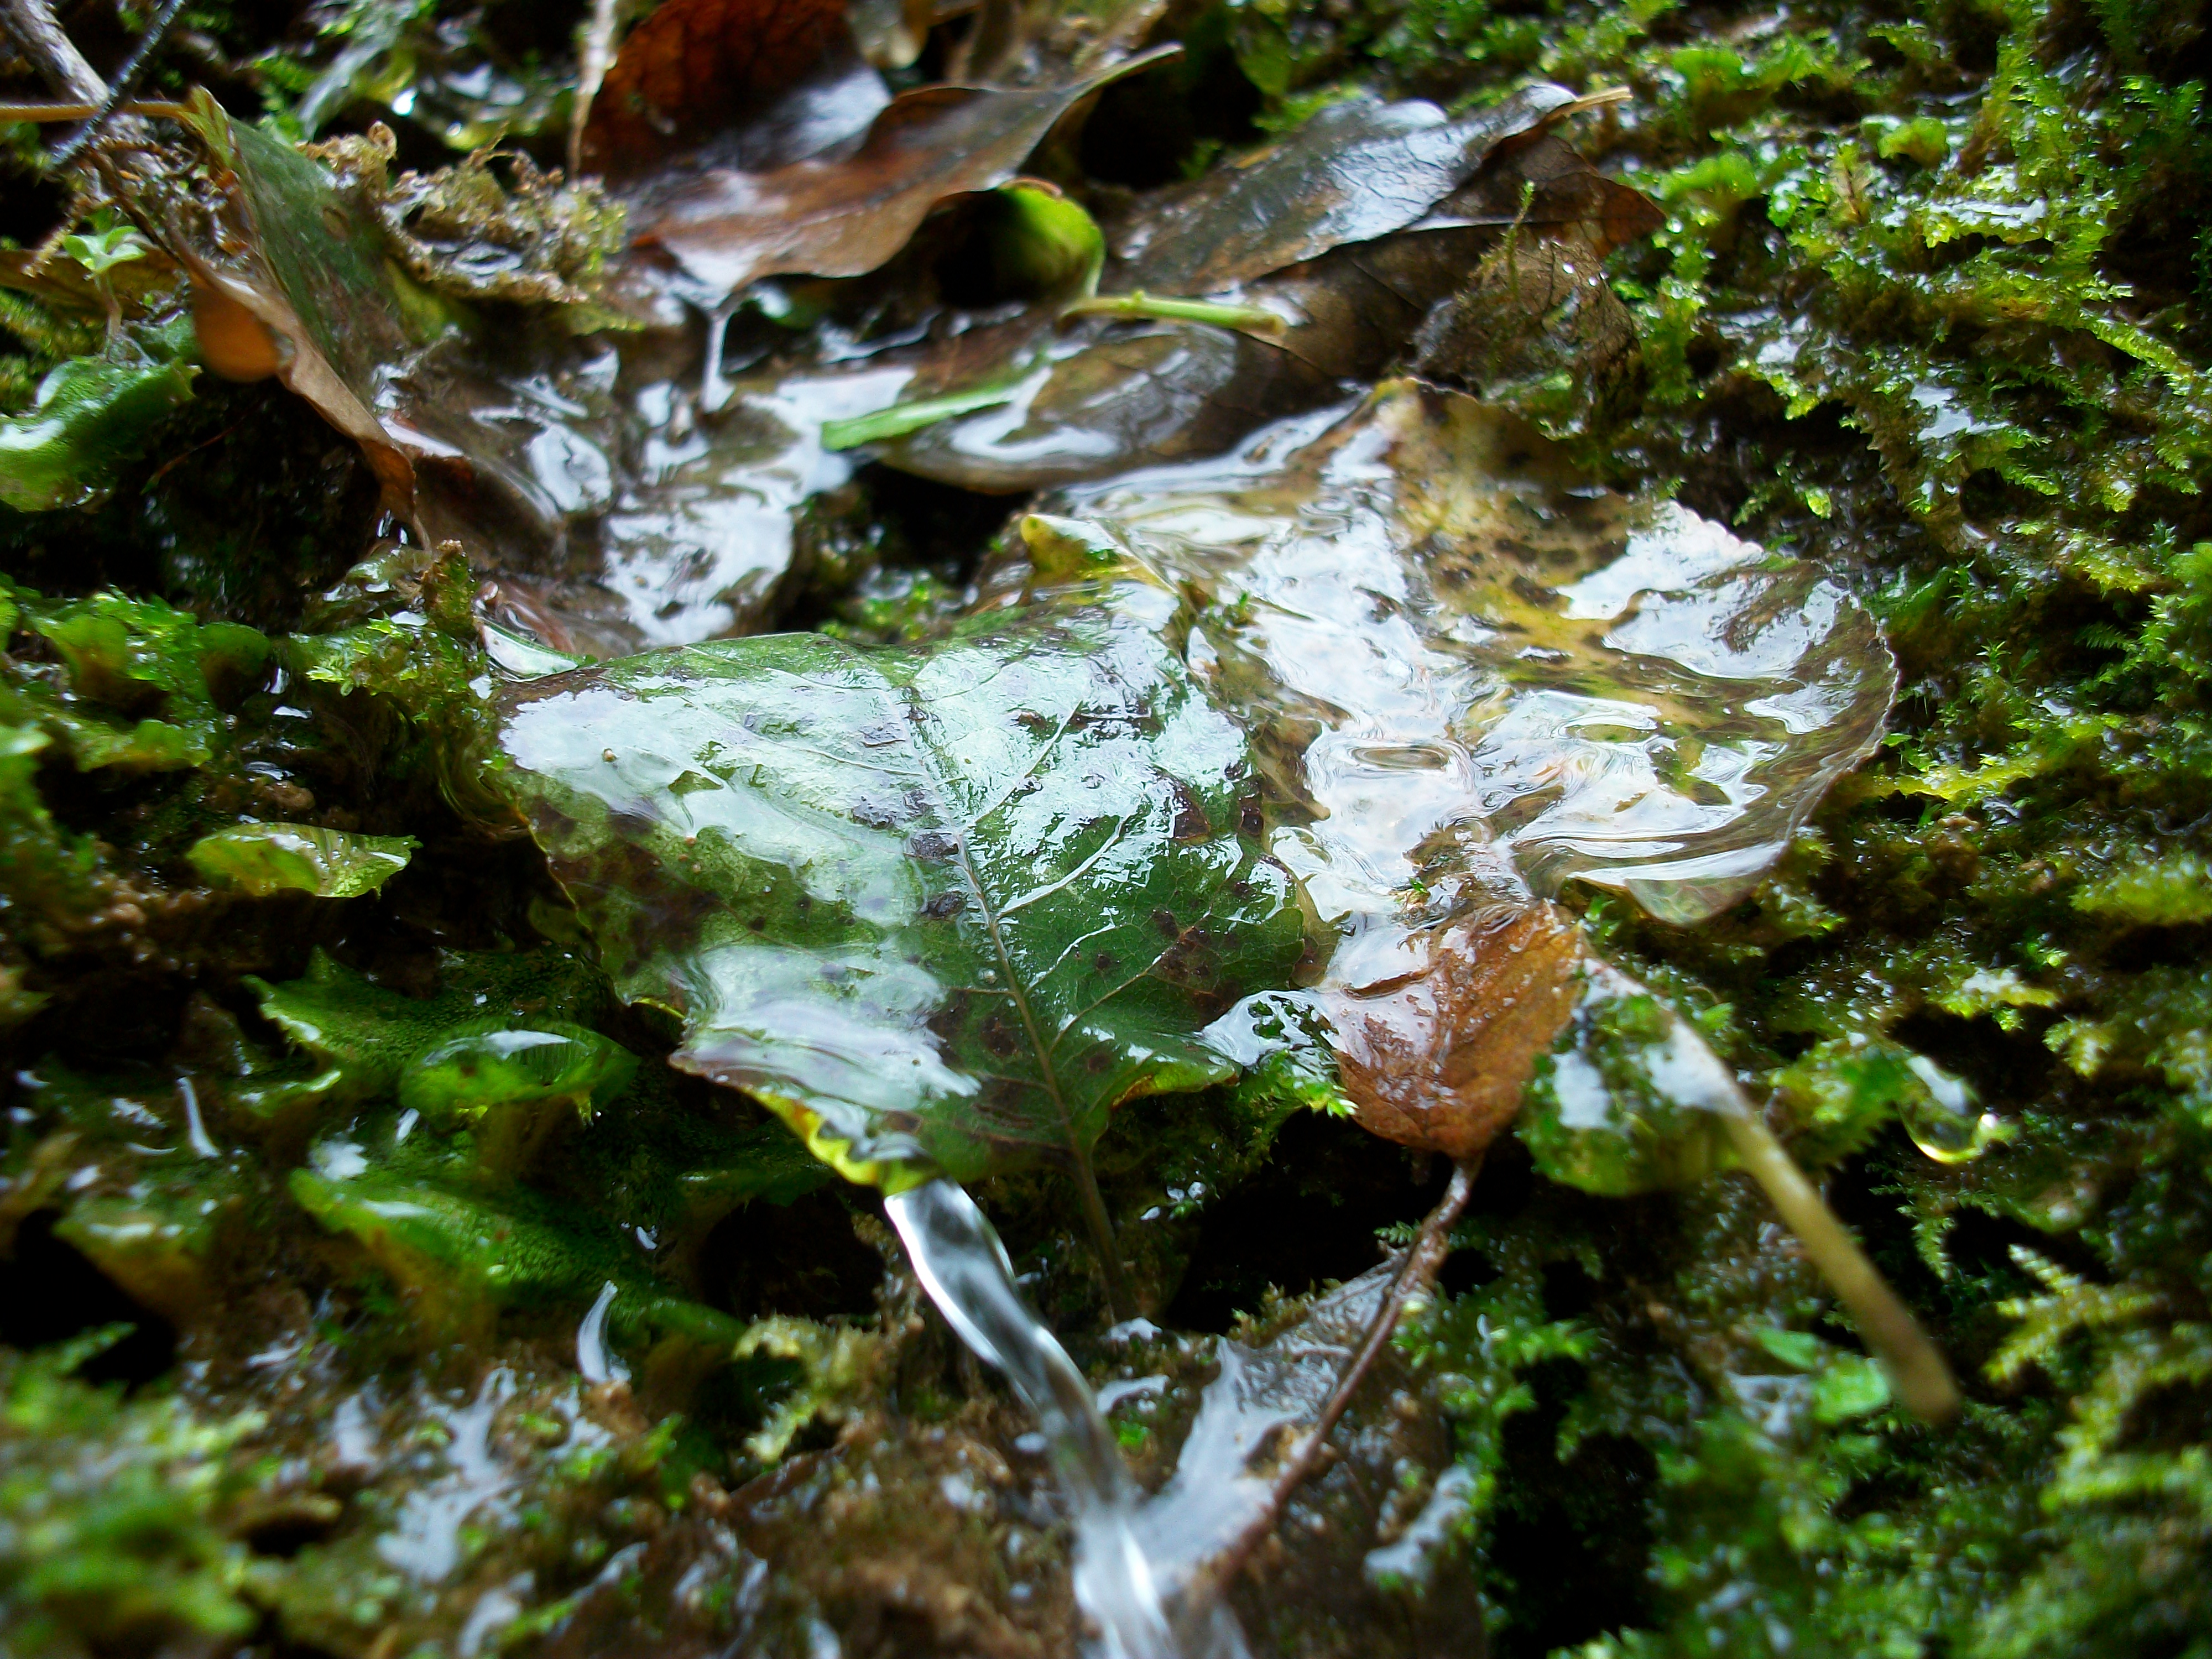 Water and Leaves, Green, Leaf, Leaves, Nature, HQ Photo